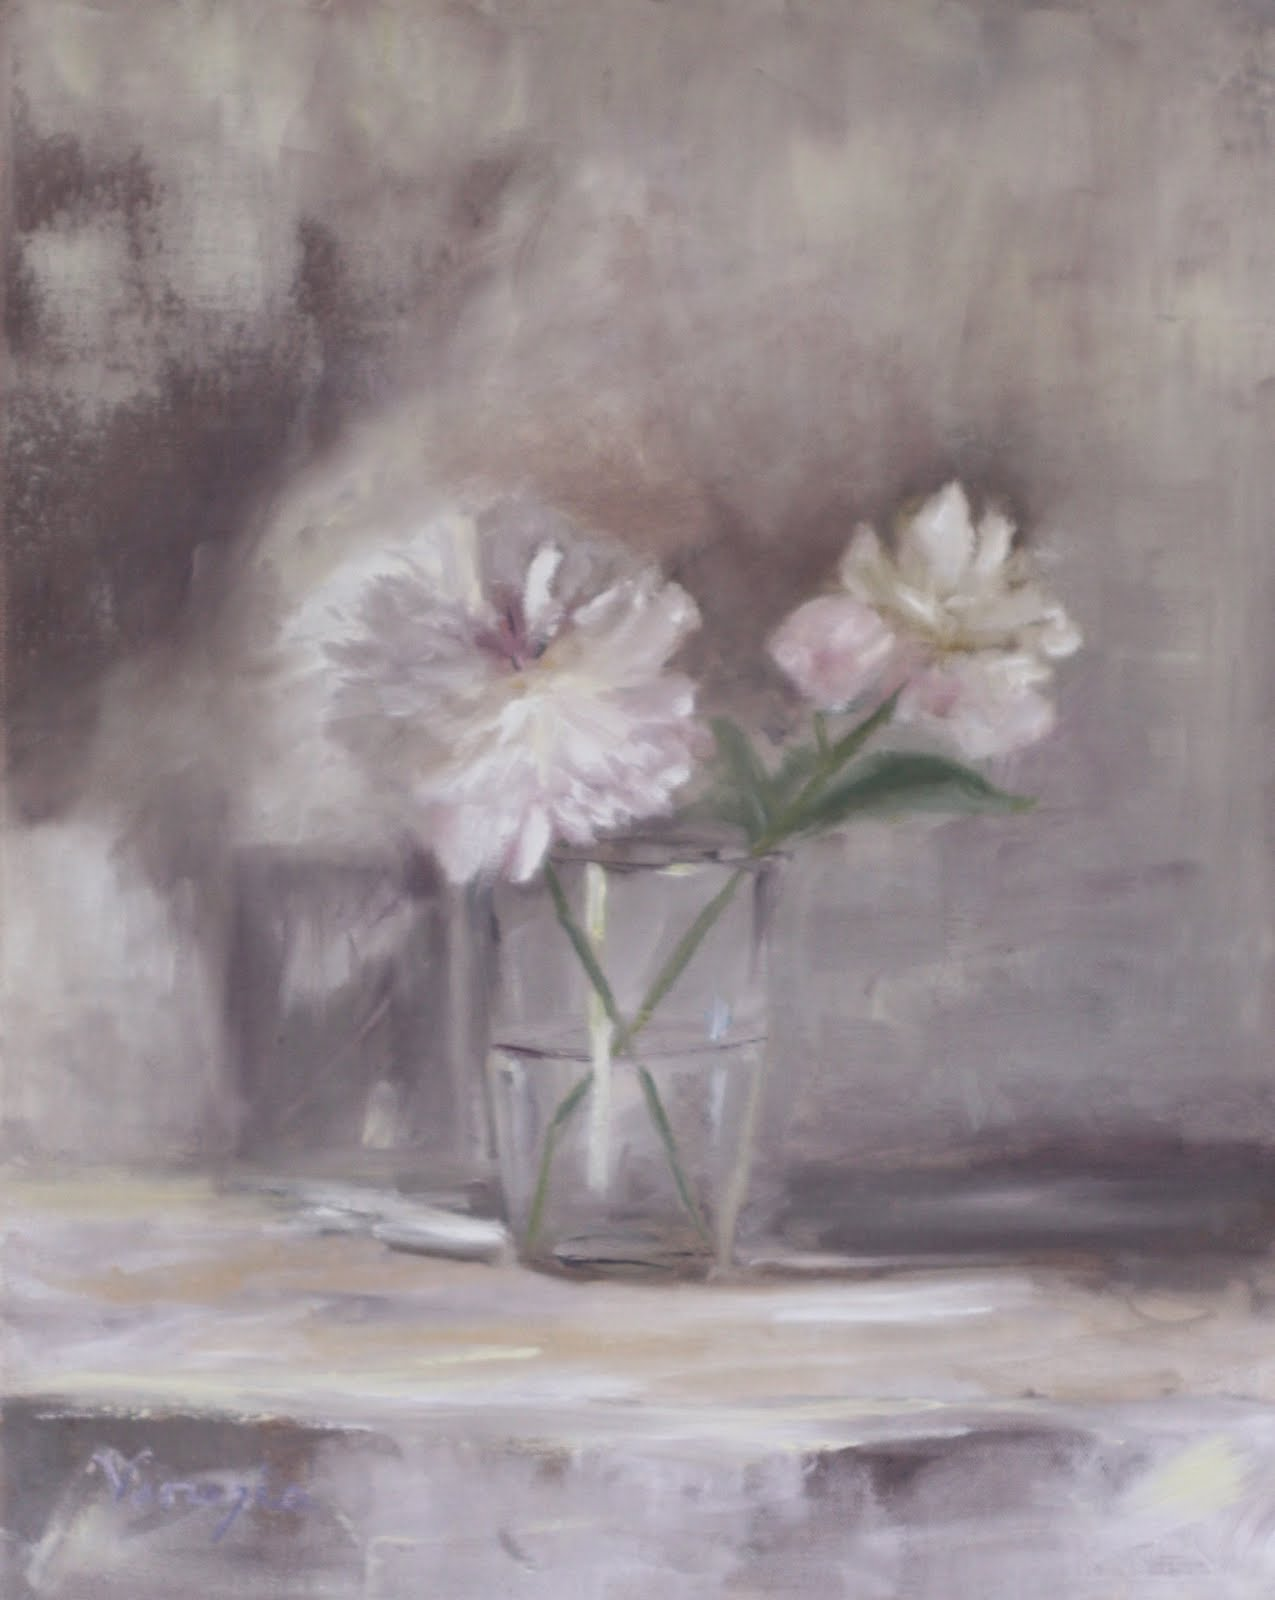 """Still Life Oil Painting with Two White Peonies in Glass"" original fine art by Carrie Venezia"